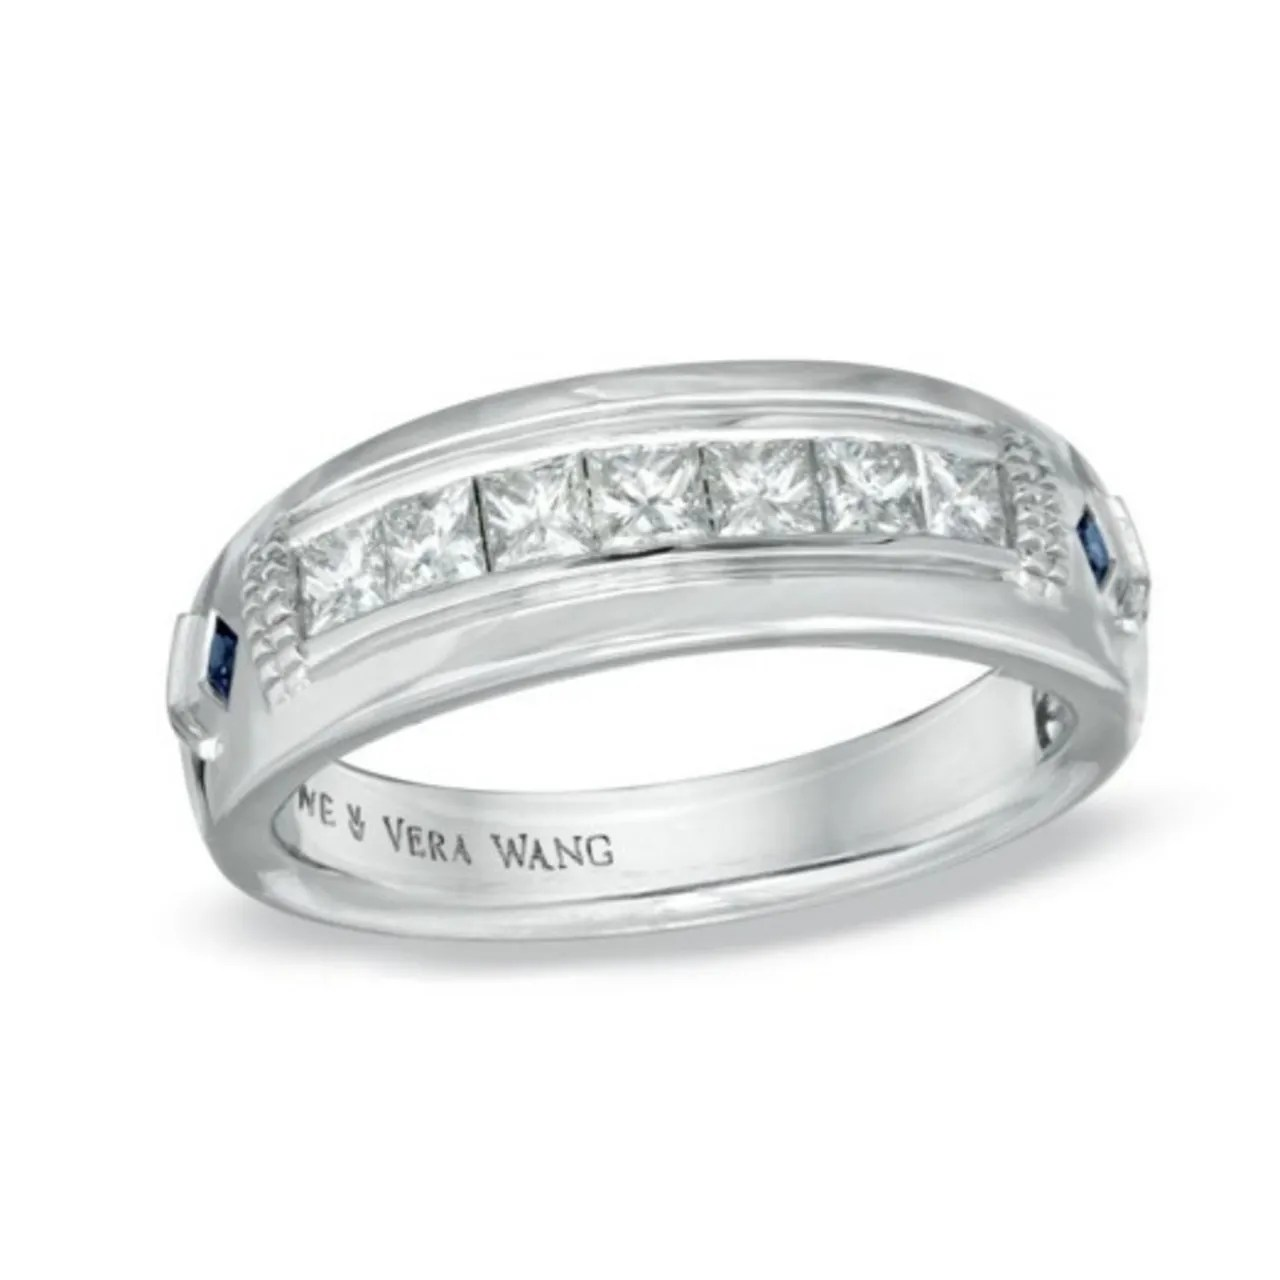 Bling Y Wedding Rings For Guys Do Or Dont Apparently